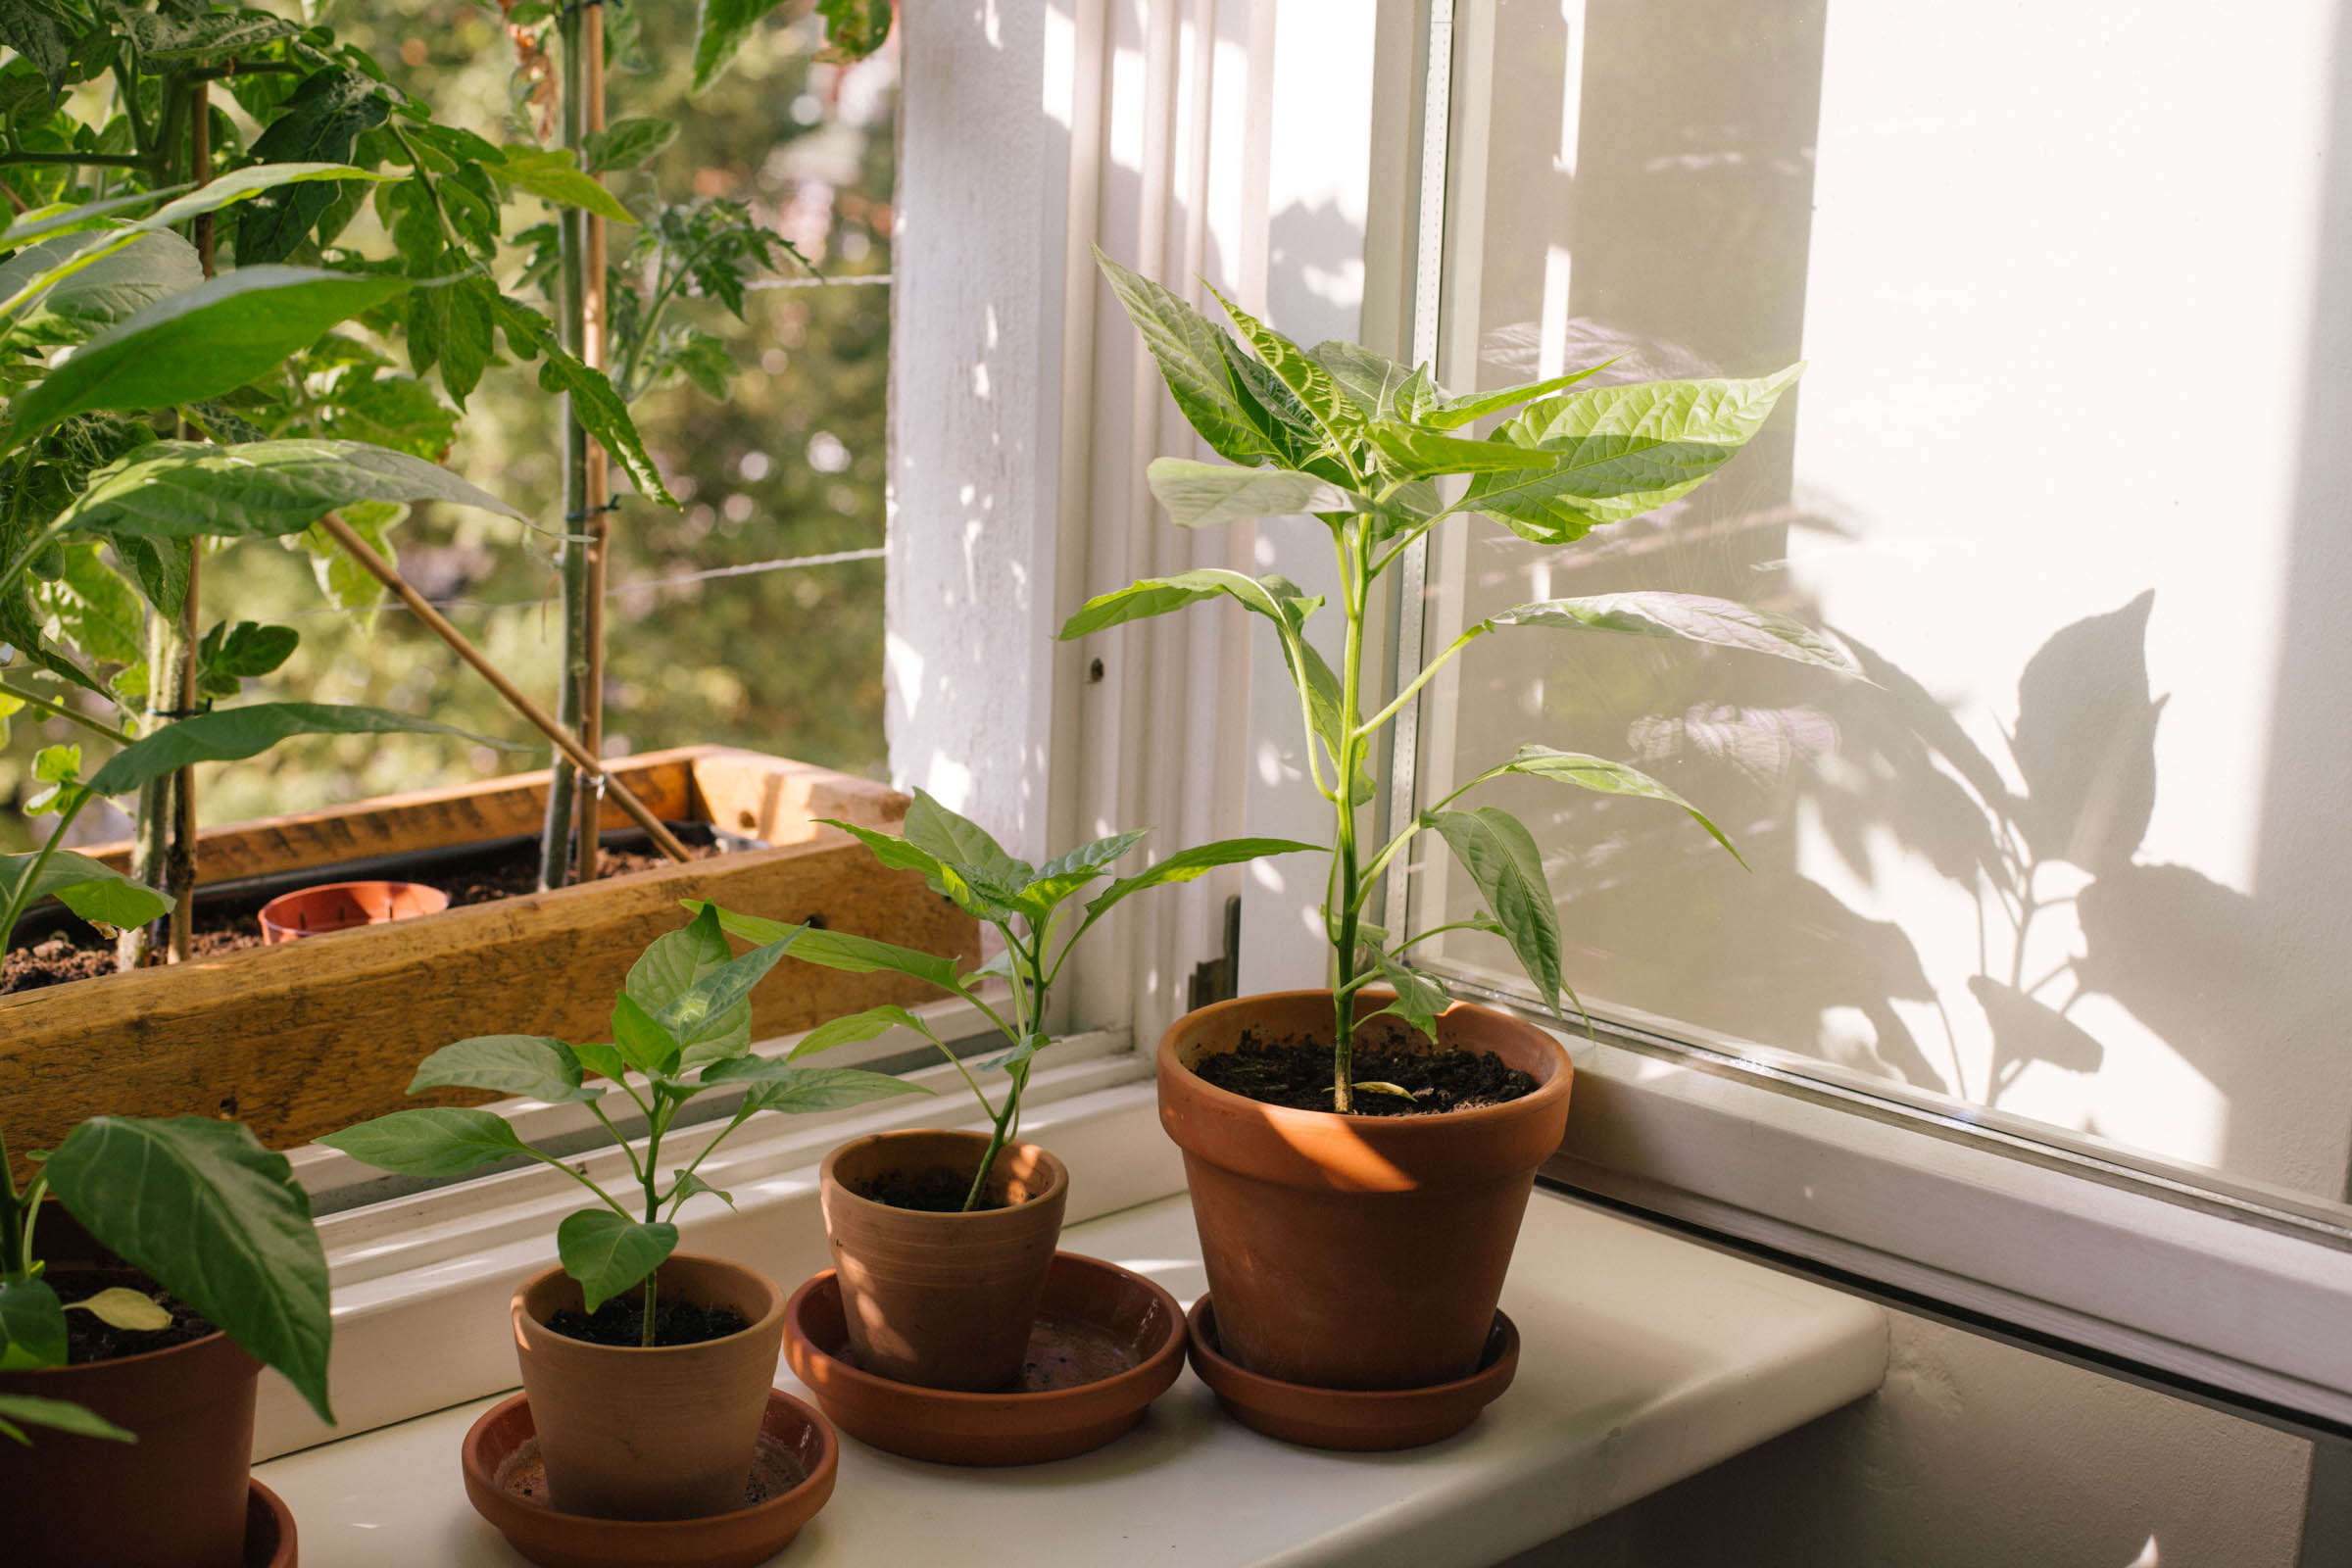 August 2015: The chili plants are slowly progressing.